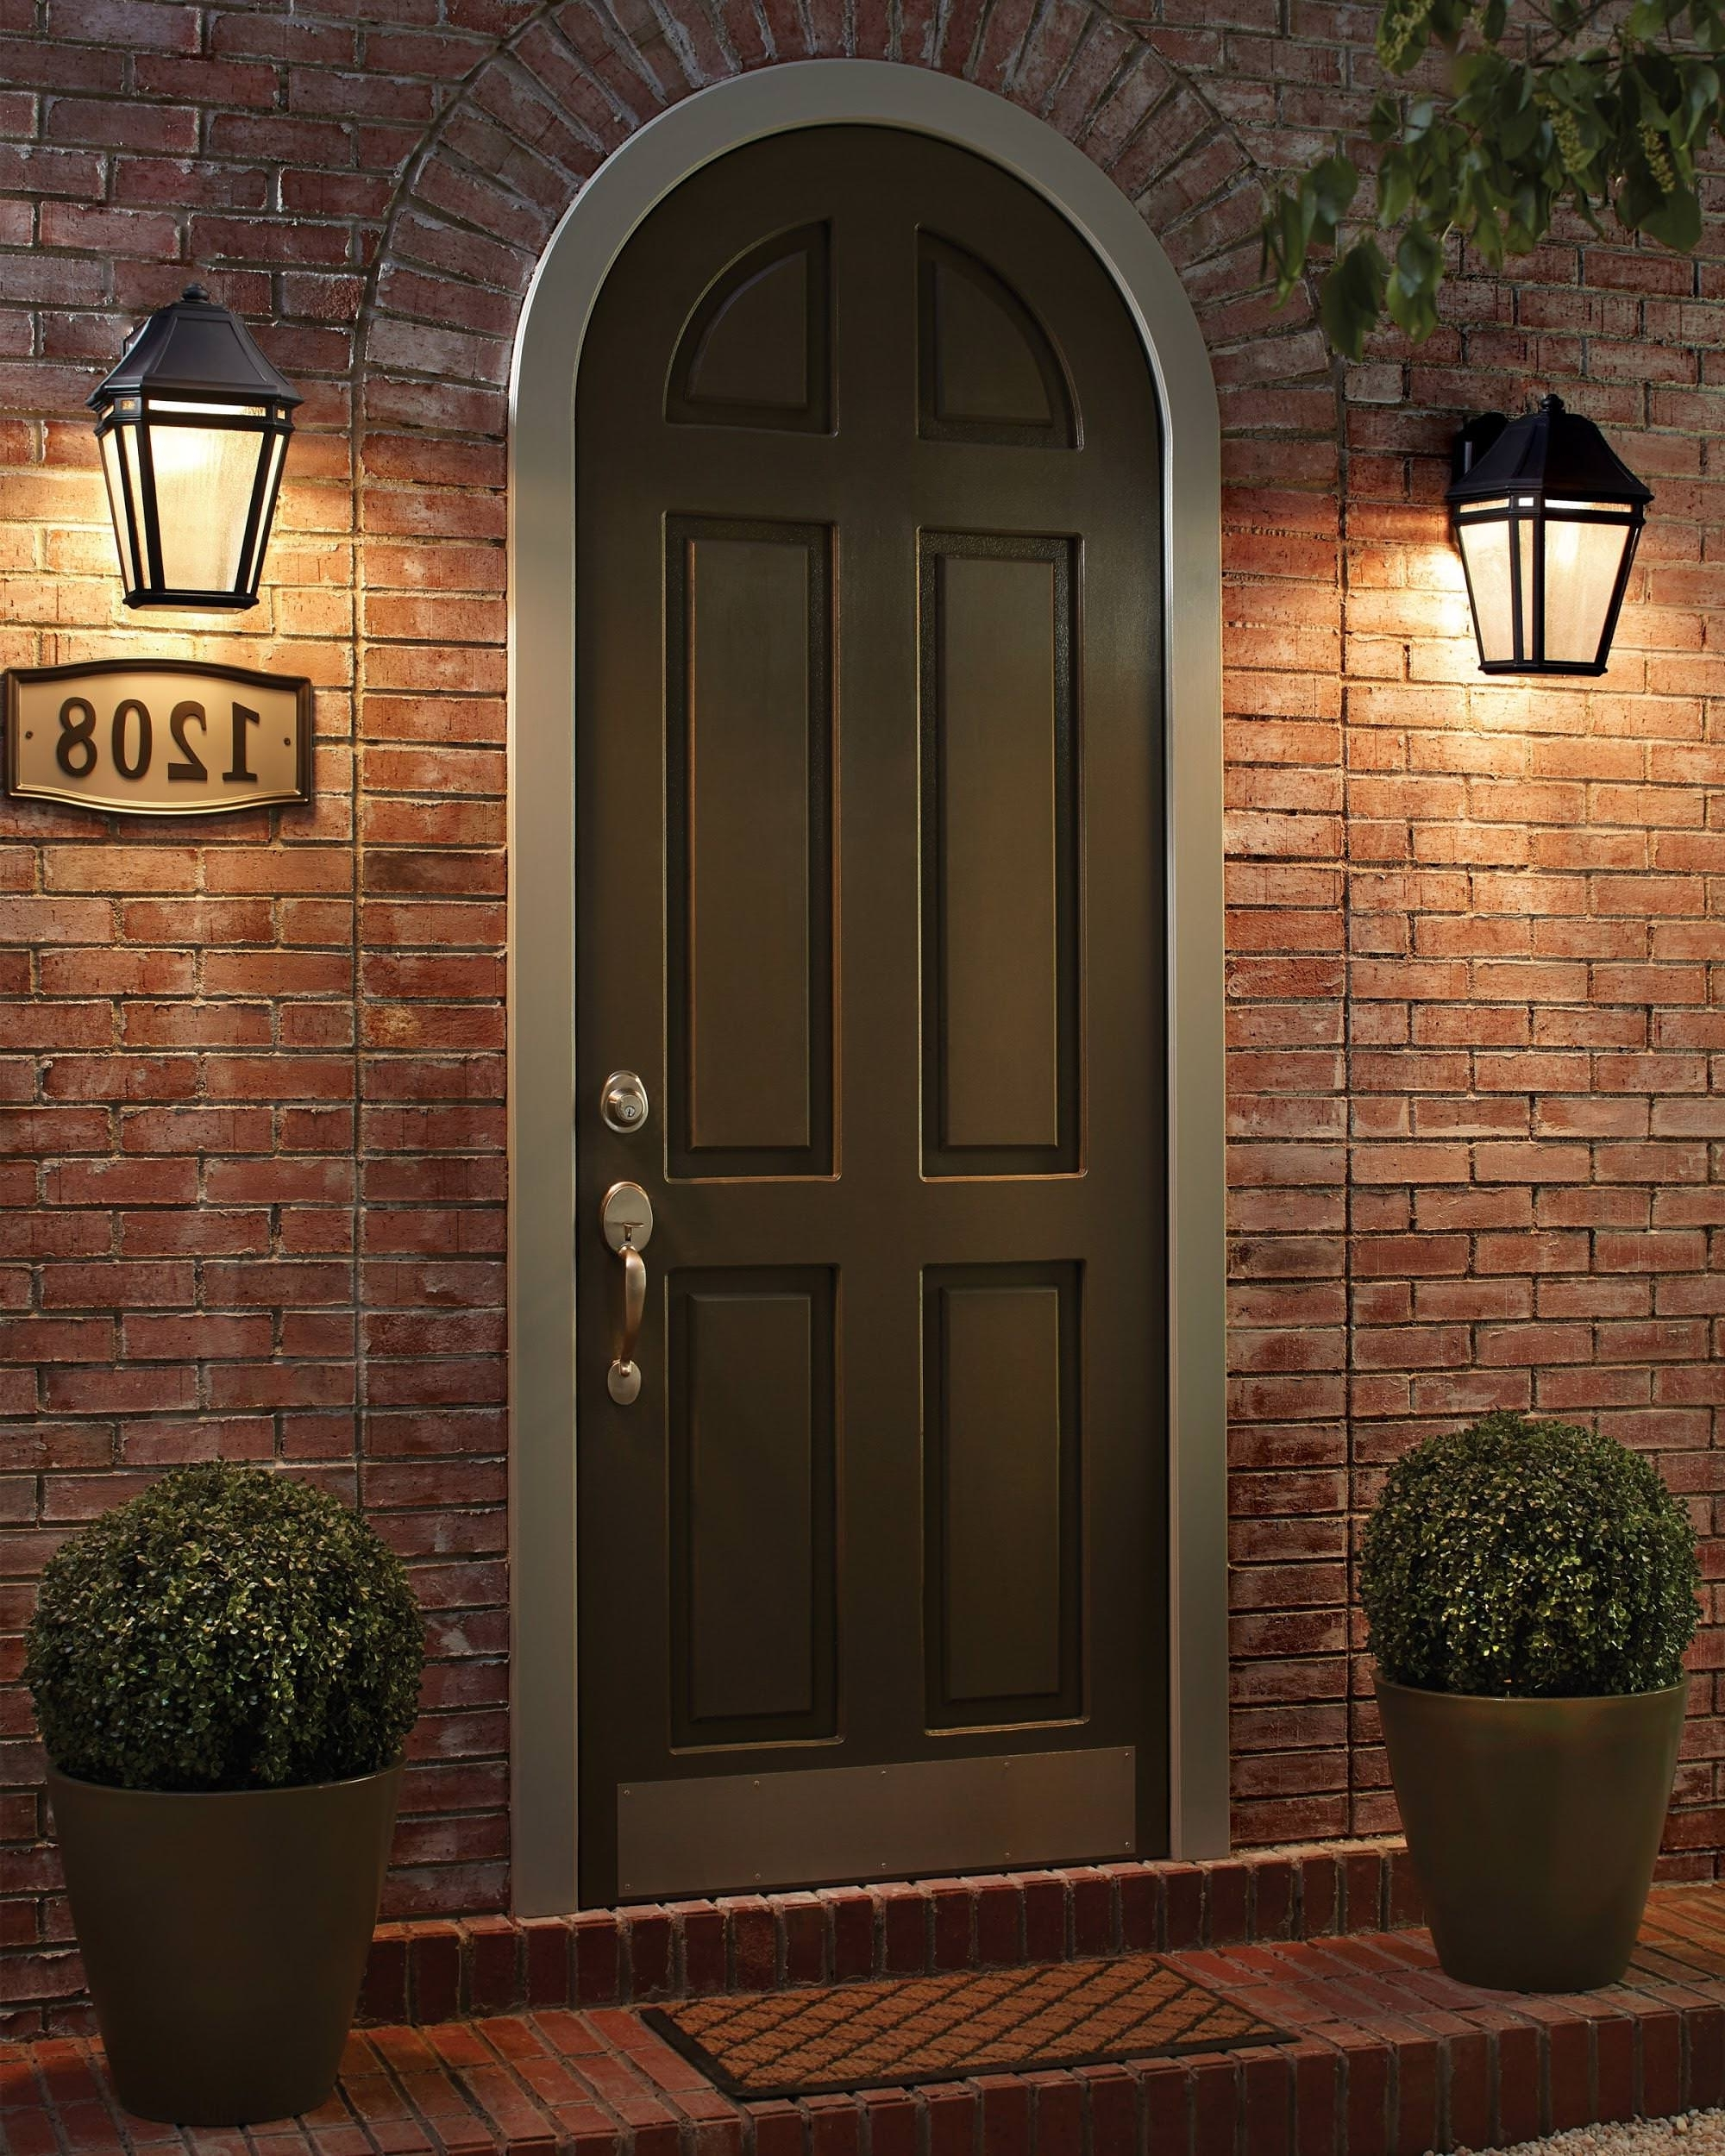 2019 Outdoor Garage Lanterns For 15 Different Outdoor Lighting Ideas For Your Home (all Types) (View 6 of 20)